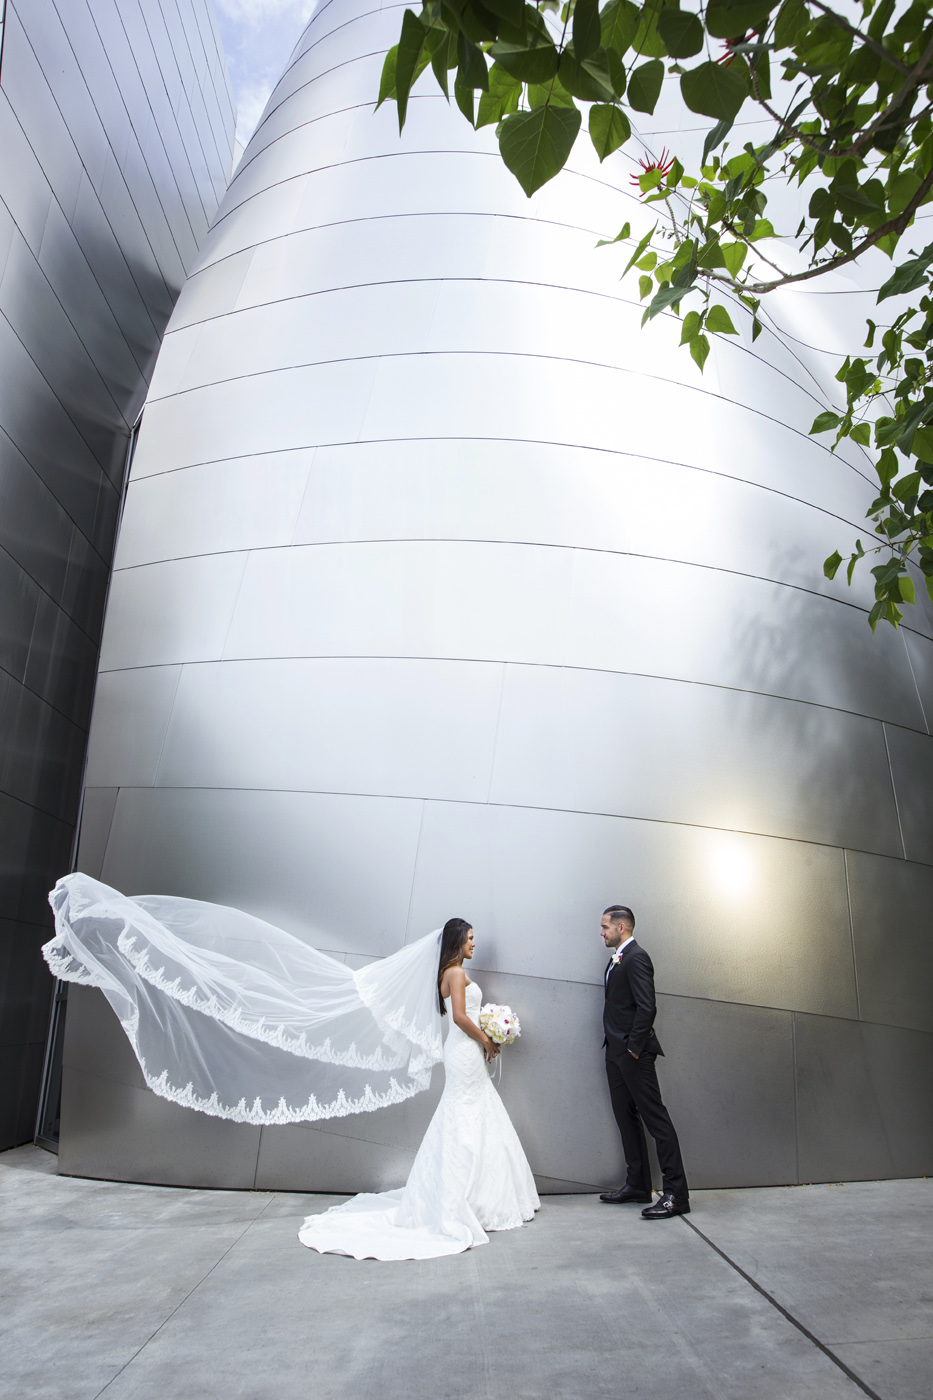 107DukePhotography_DukeImages_weddings_losangeles.jpg